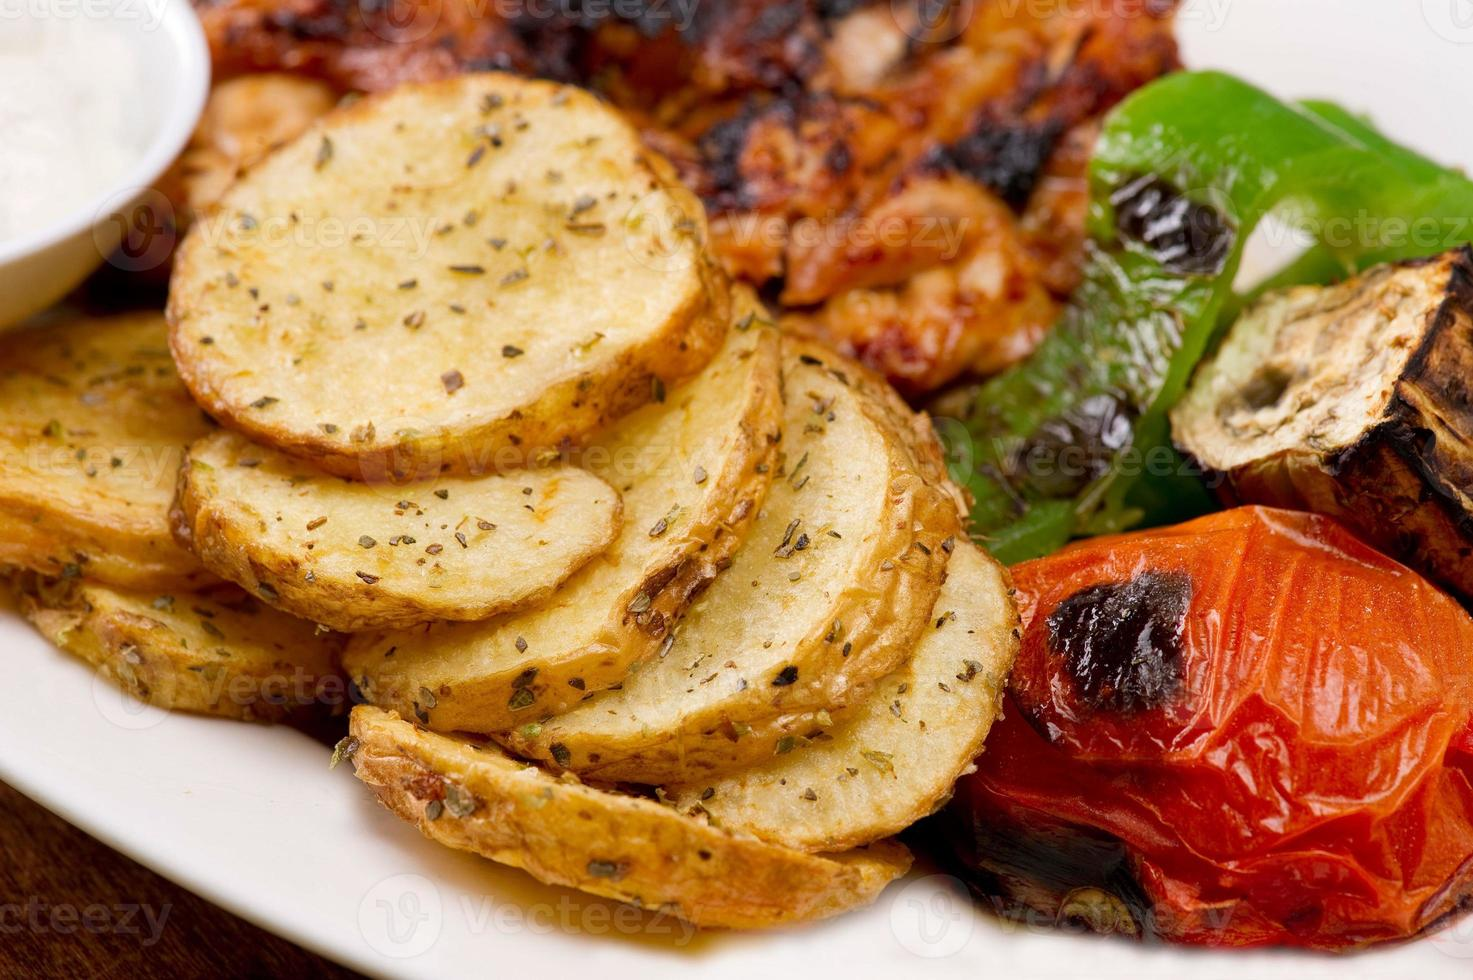 Grilled chicken fillets, with potatoes and vegetables photo